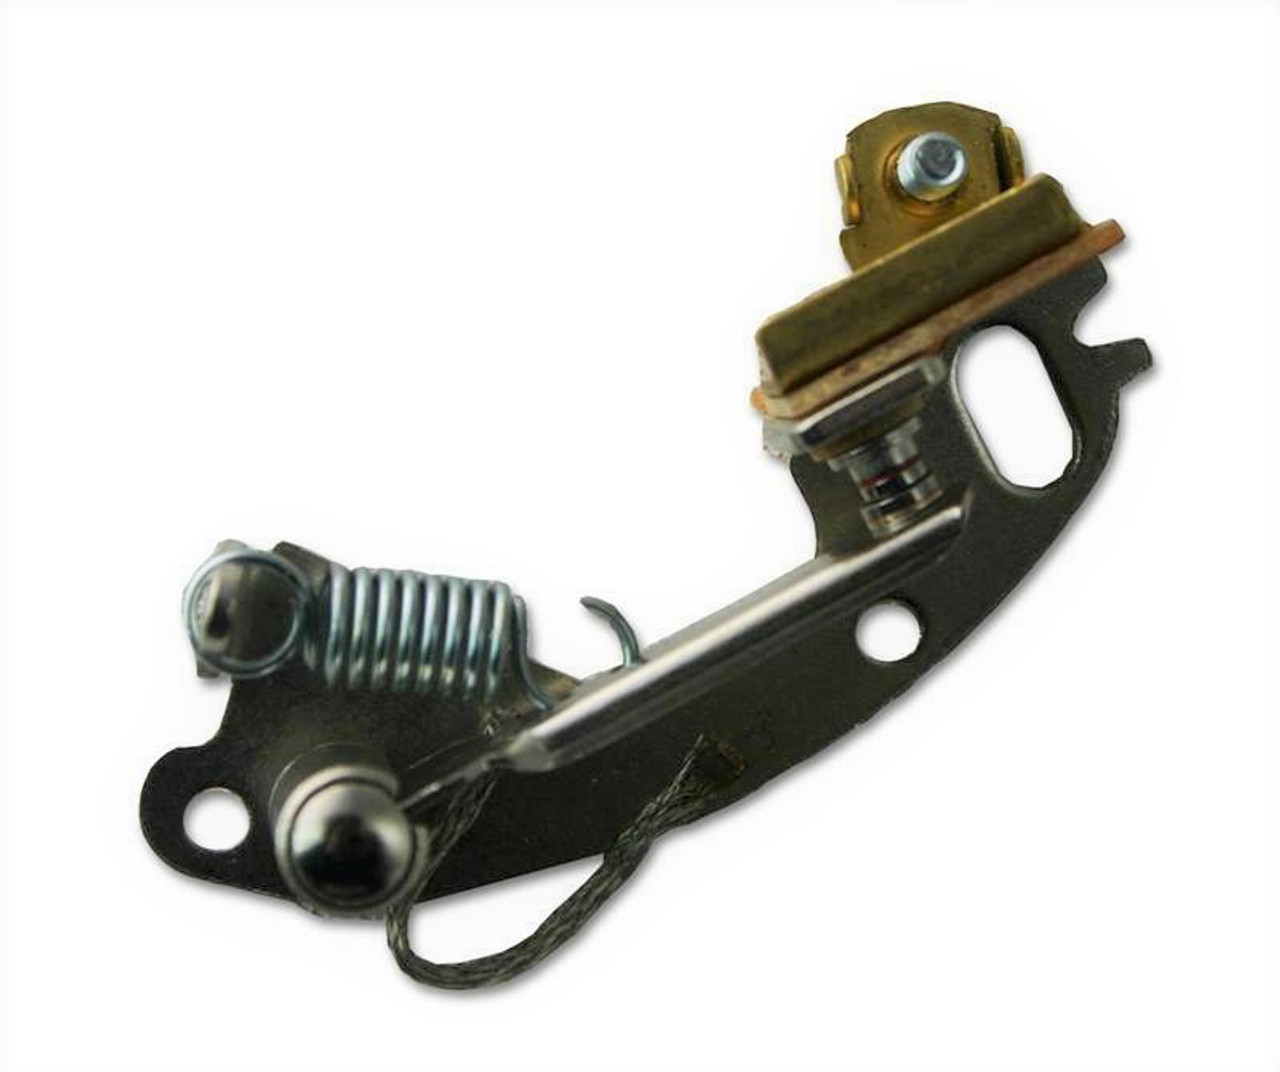 Briggs and Stratton Breaker Ignition Points 391284